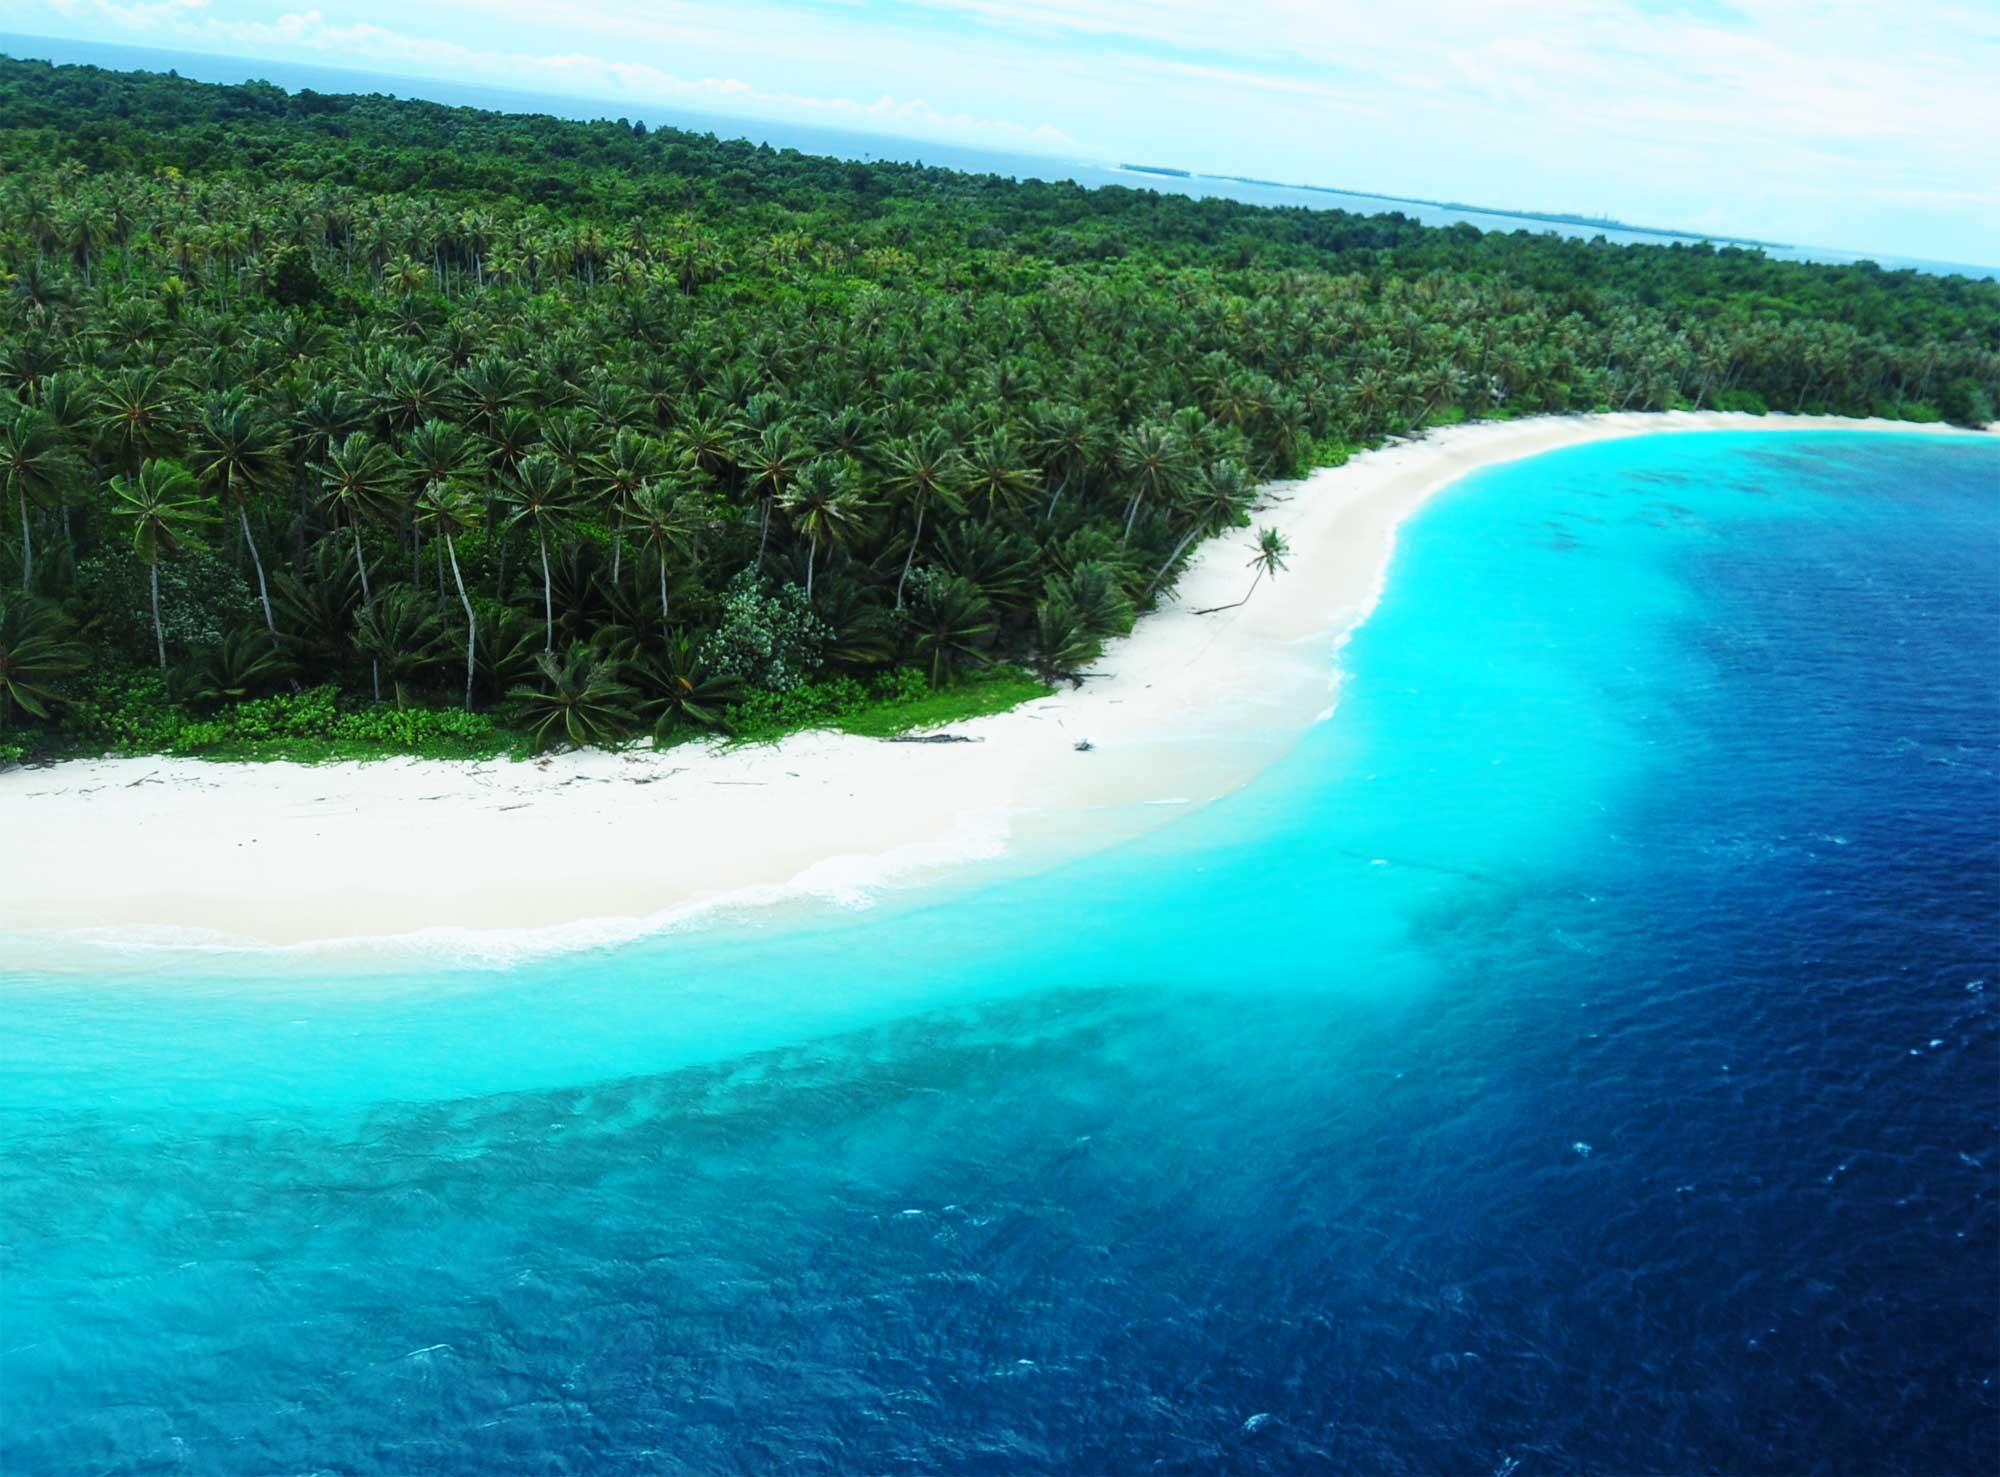 Wavepark Mentawai Islands - Surfing beach - Screw Them All - Blog